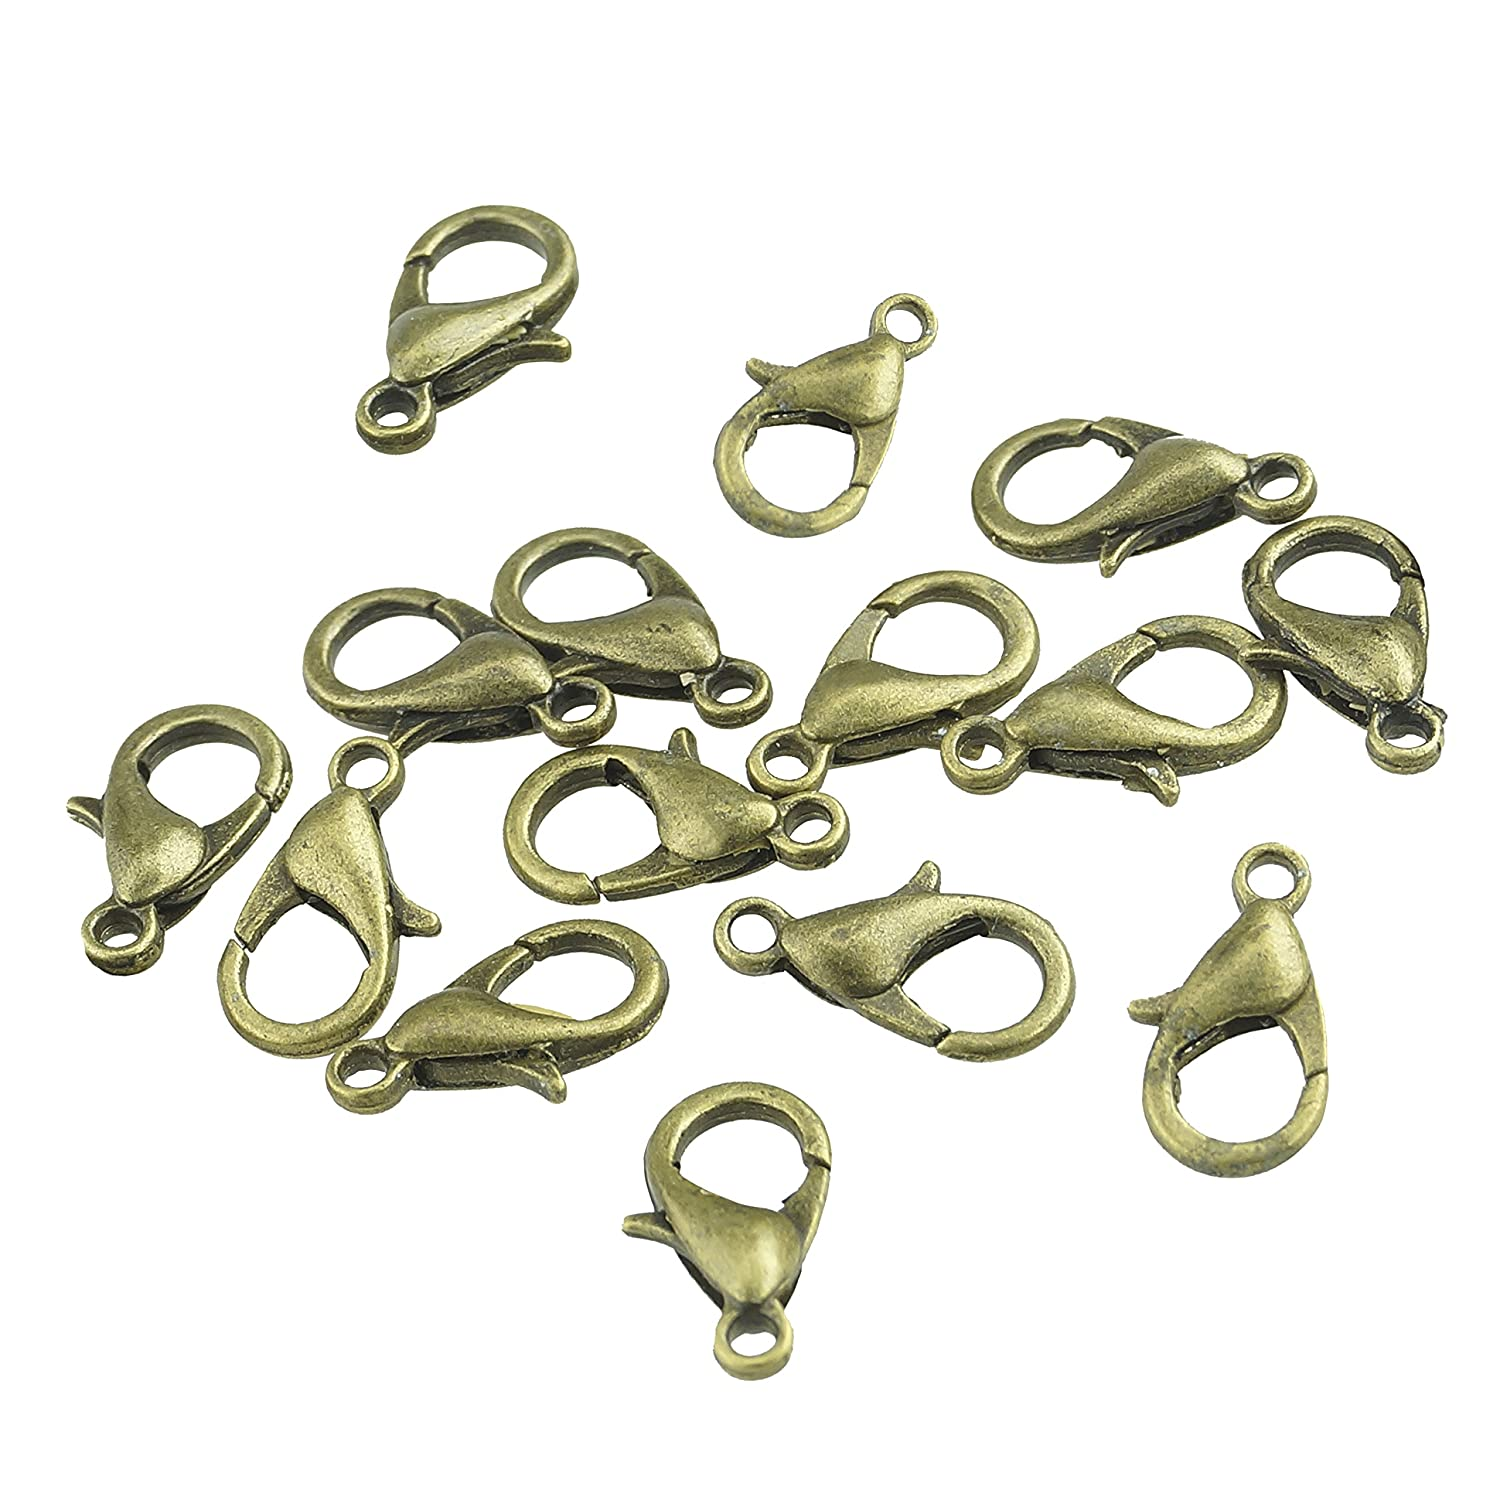 Curved Lobster Clasps -100 pcs Bronze Plated Lobster Claw Clasps Findings - 7 mm x 12 mm with Kare & Kind Retail Packaging (Bronze) 4336831610